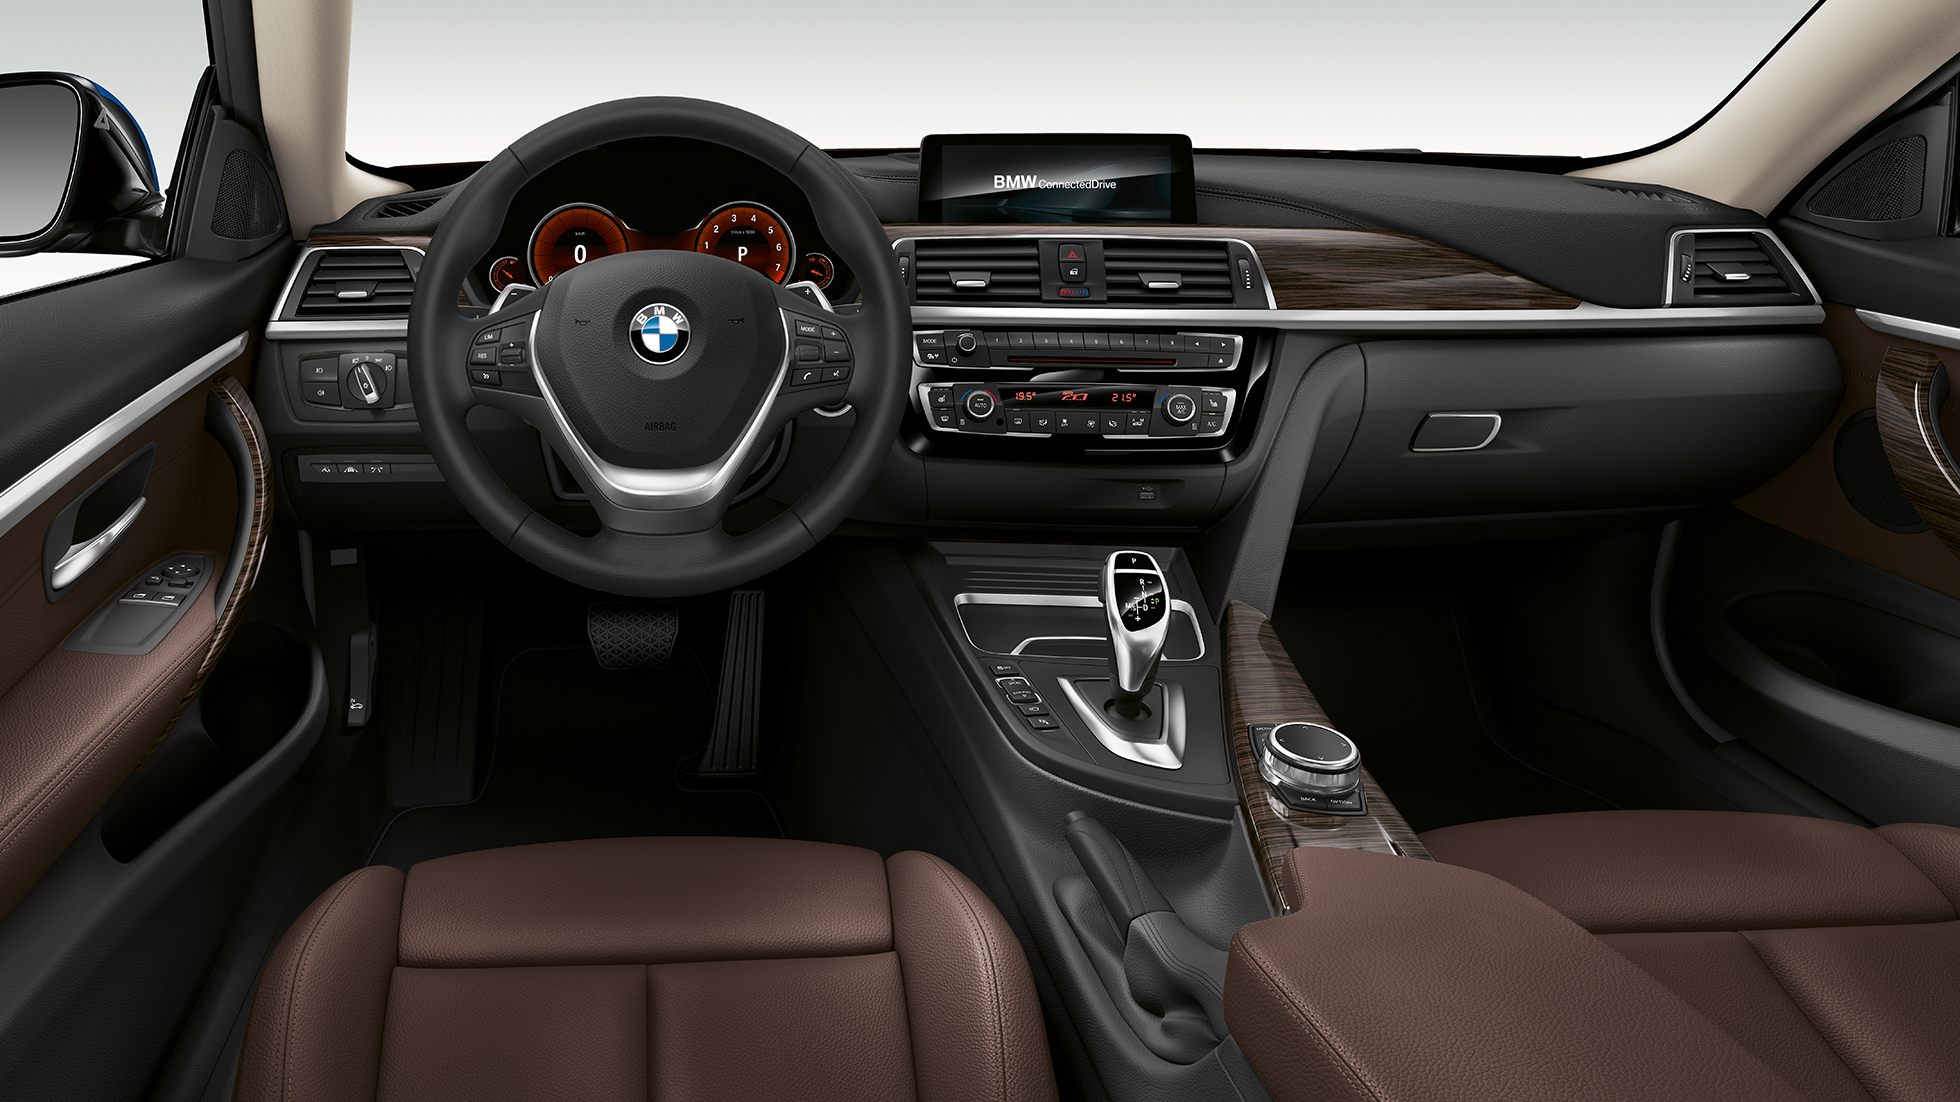 BMW 4-serie Coupé, Model Luxury Line, cockpit